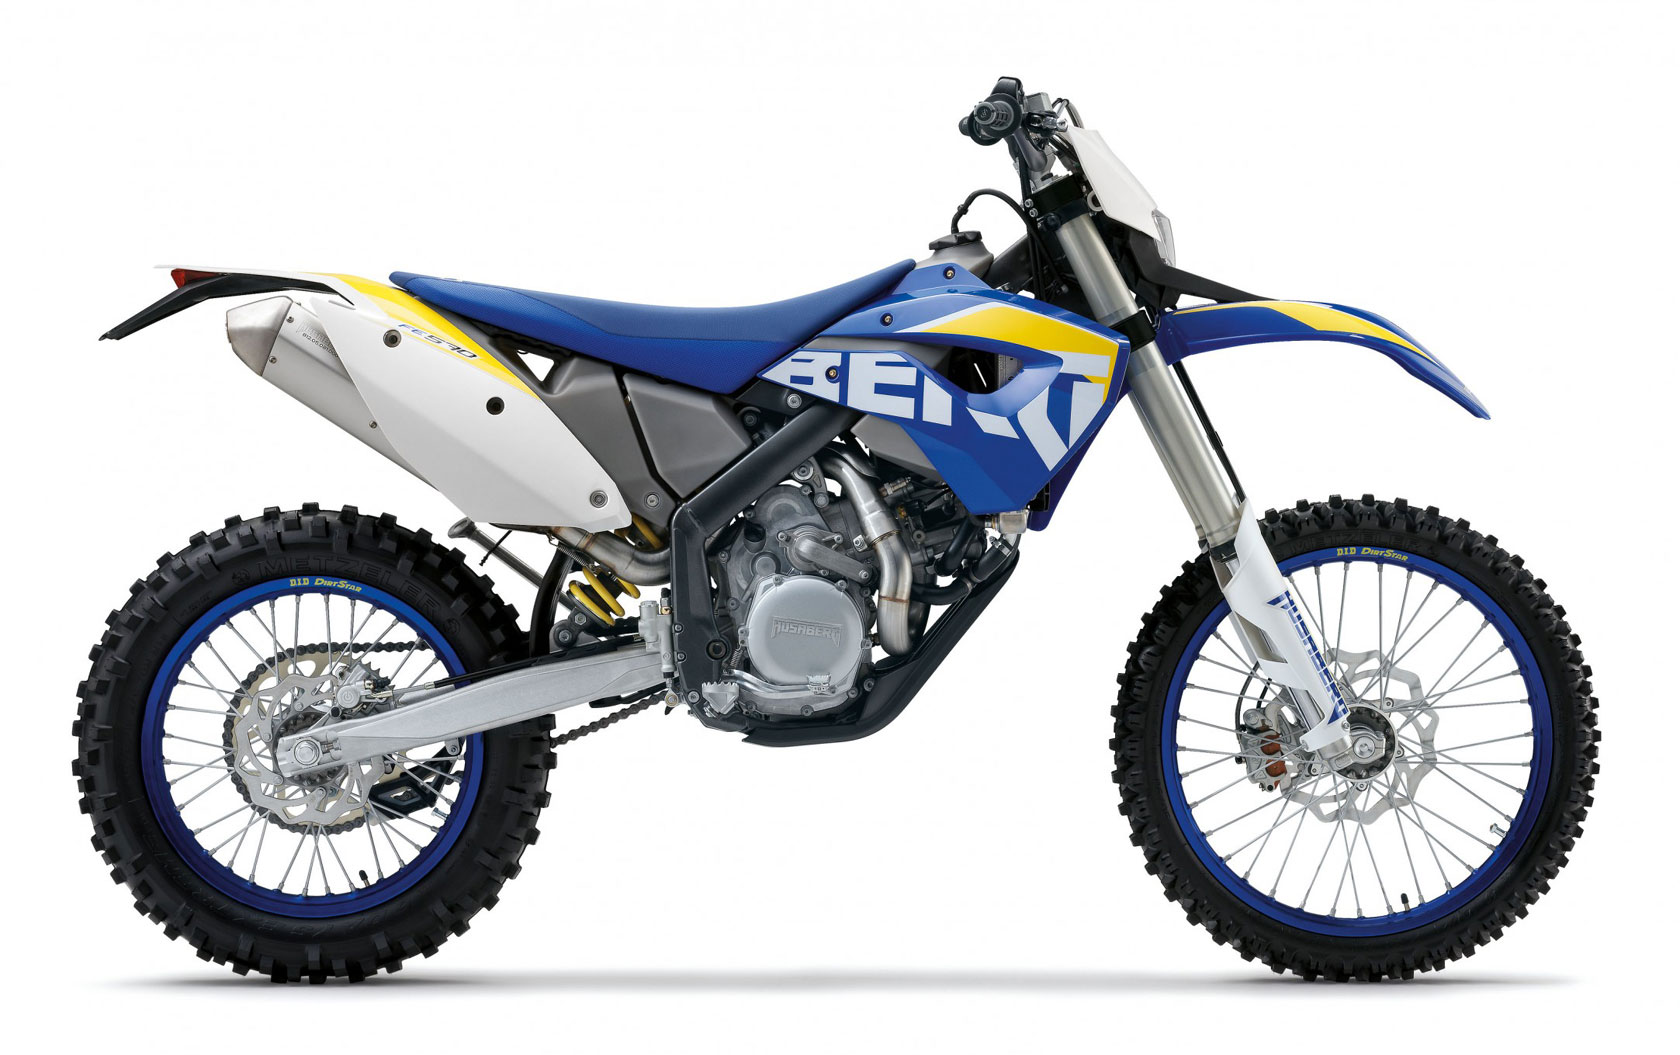 2010 husaberg fe570 enduro. Black Bedroom Furniture Sets. Home Design Ideas